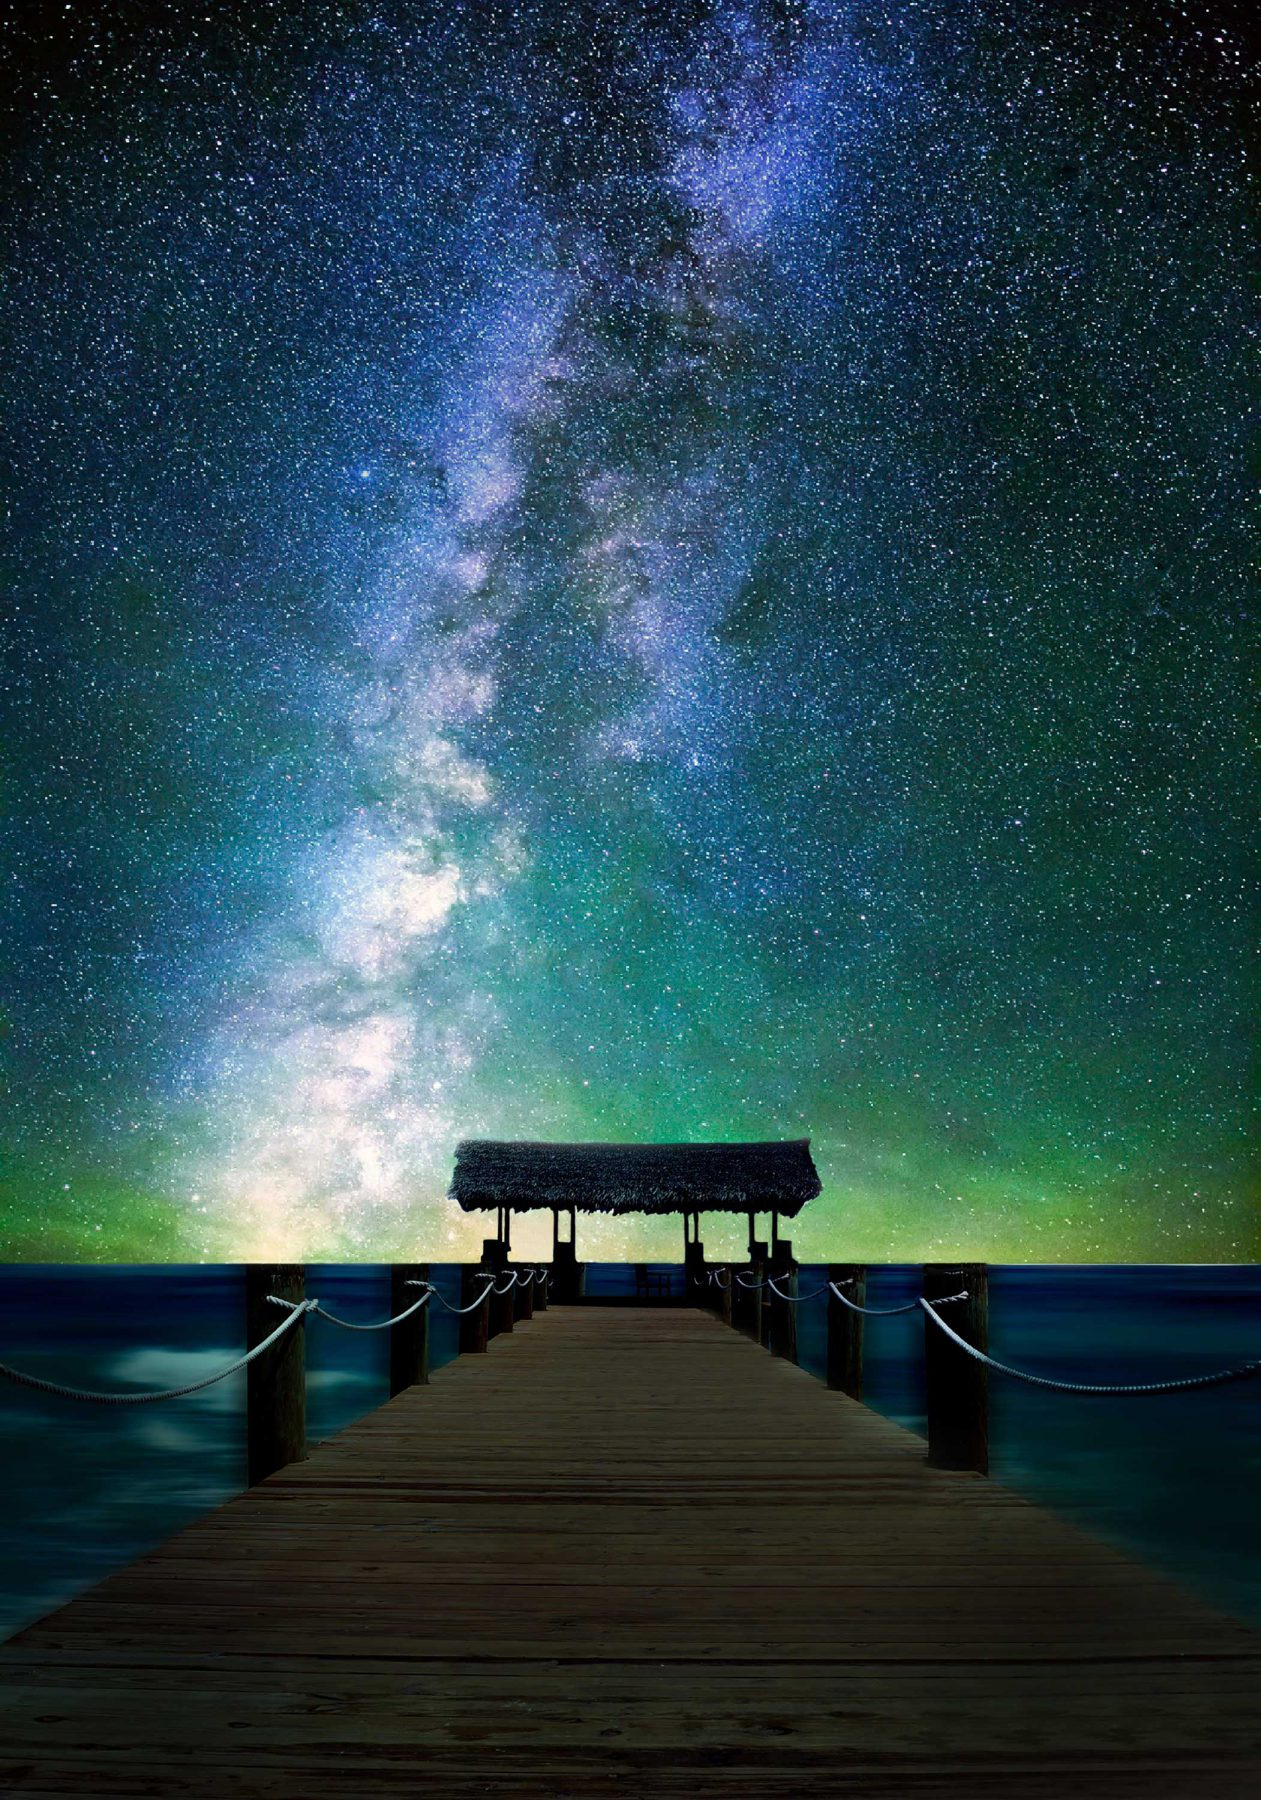 Wooden walkway leading to a thatched jetty under a very starry, blue and green streaked night sky, one of many romantic destinations in The Bahamas